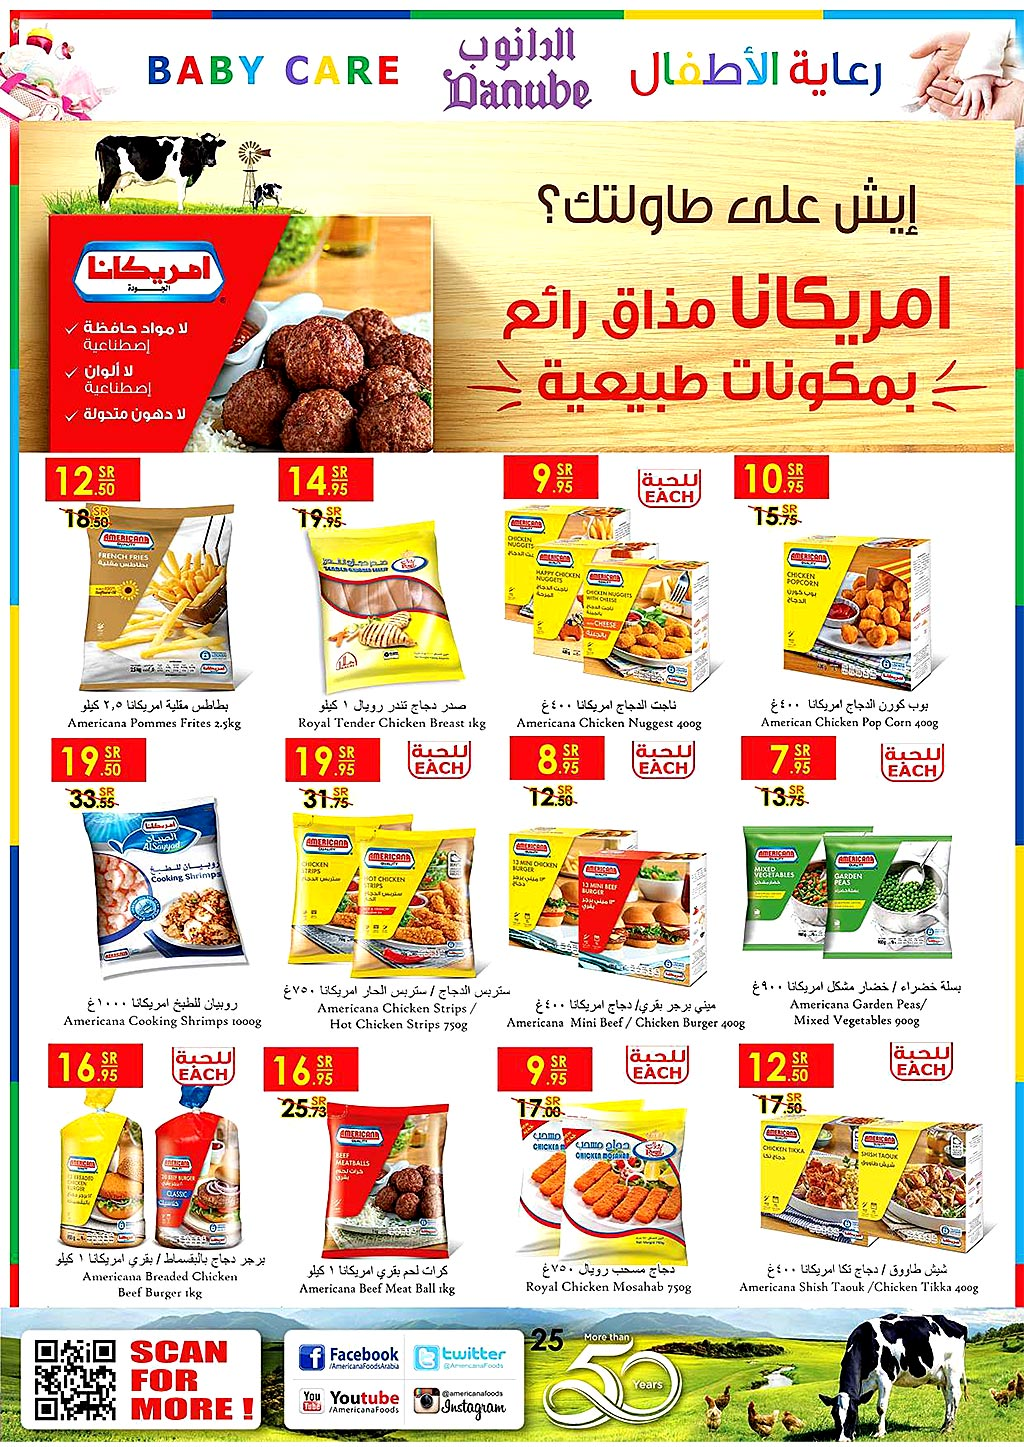 danube offers from 24july to 30july 2019 page number 24 عروض الدانوب من 24 يوليو حتى 30 يوليو 2019 صفحة رقم 24